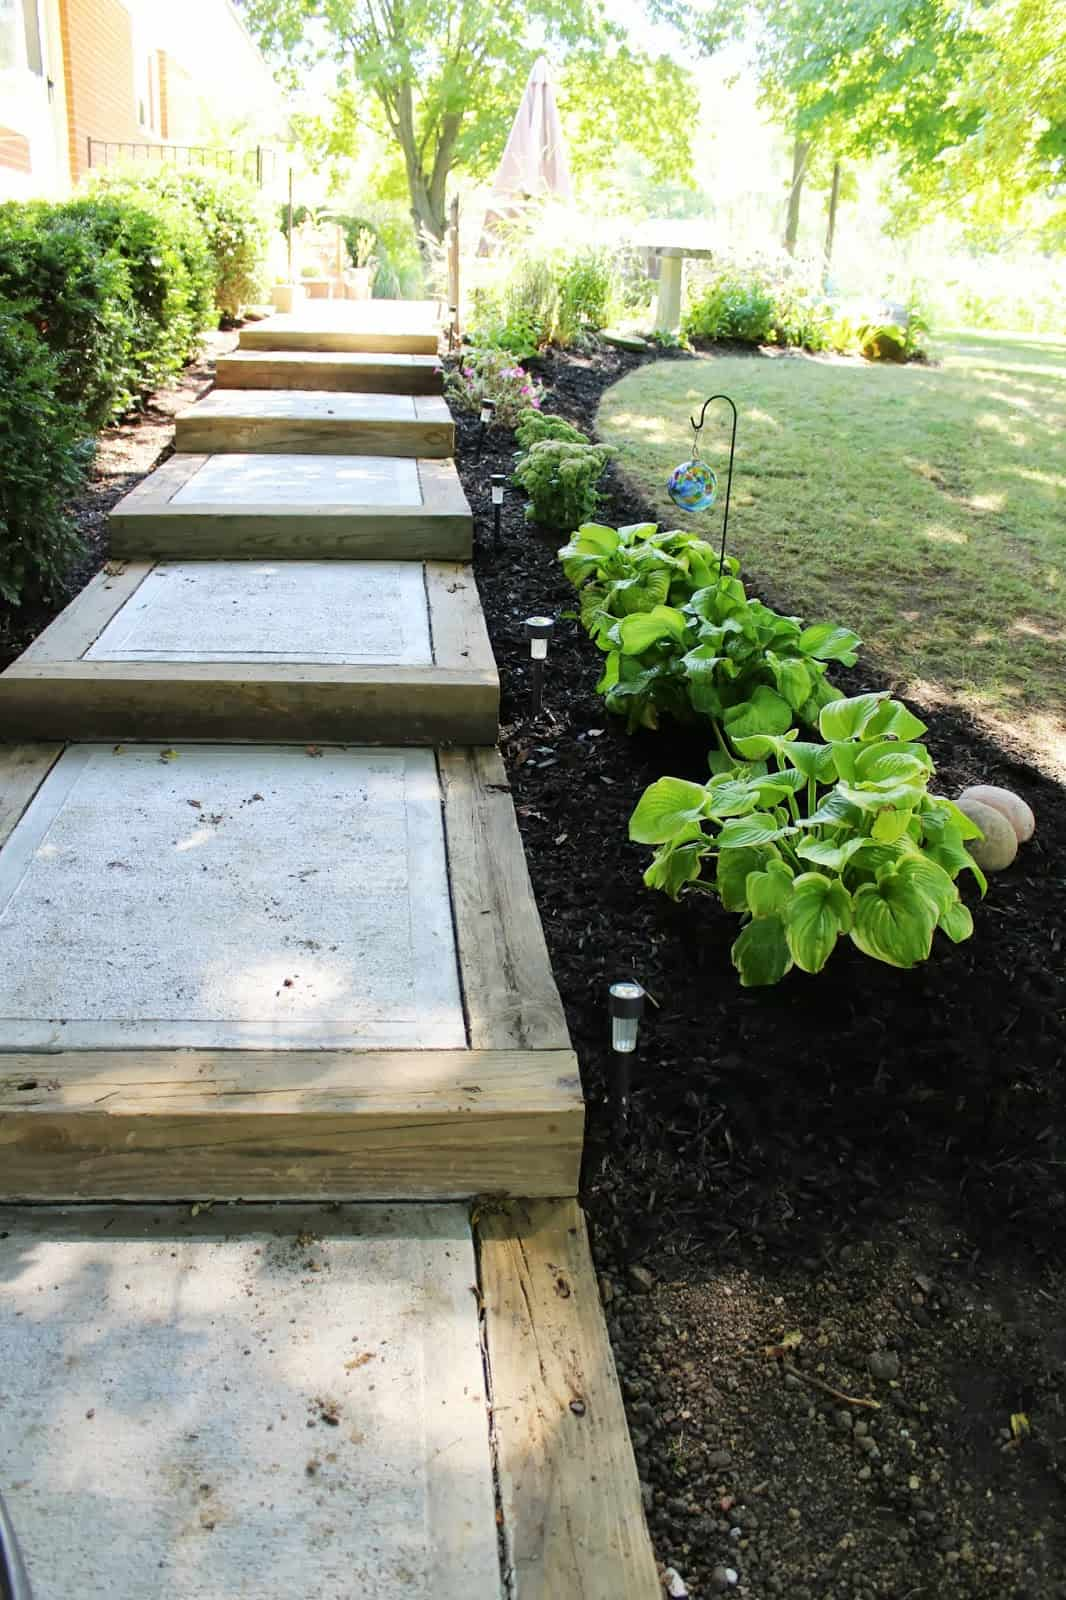 Wood and concrete steps for a garden pathway